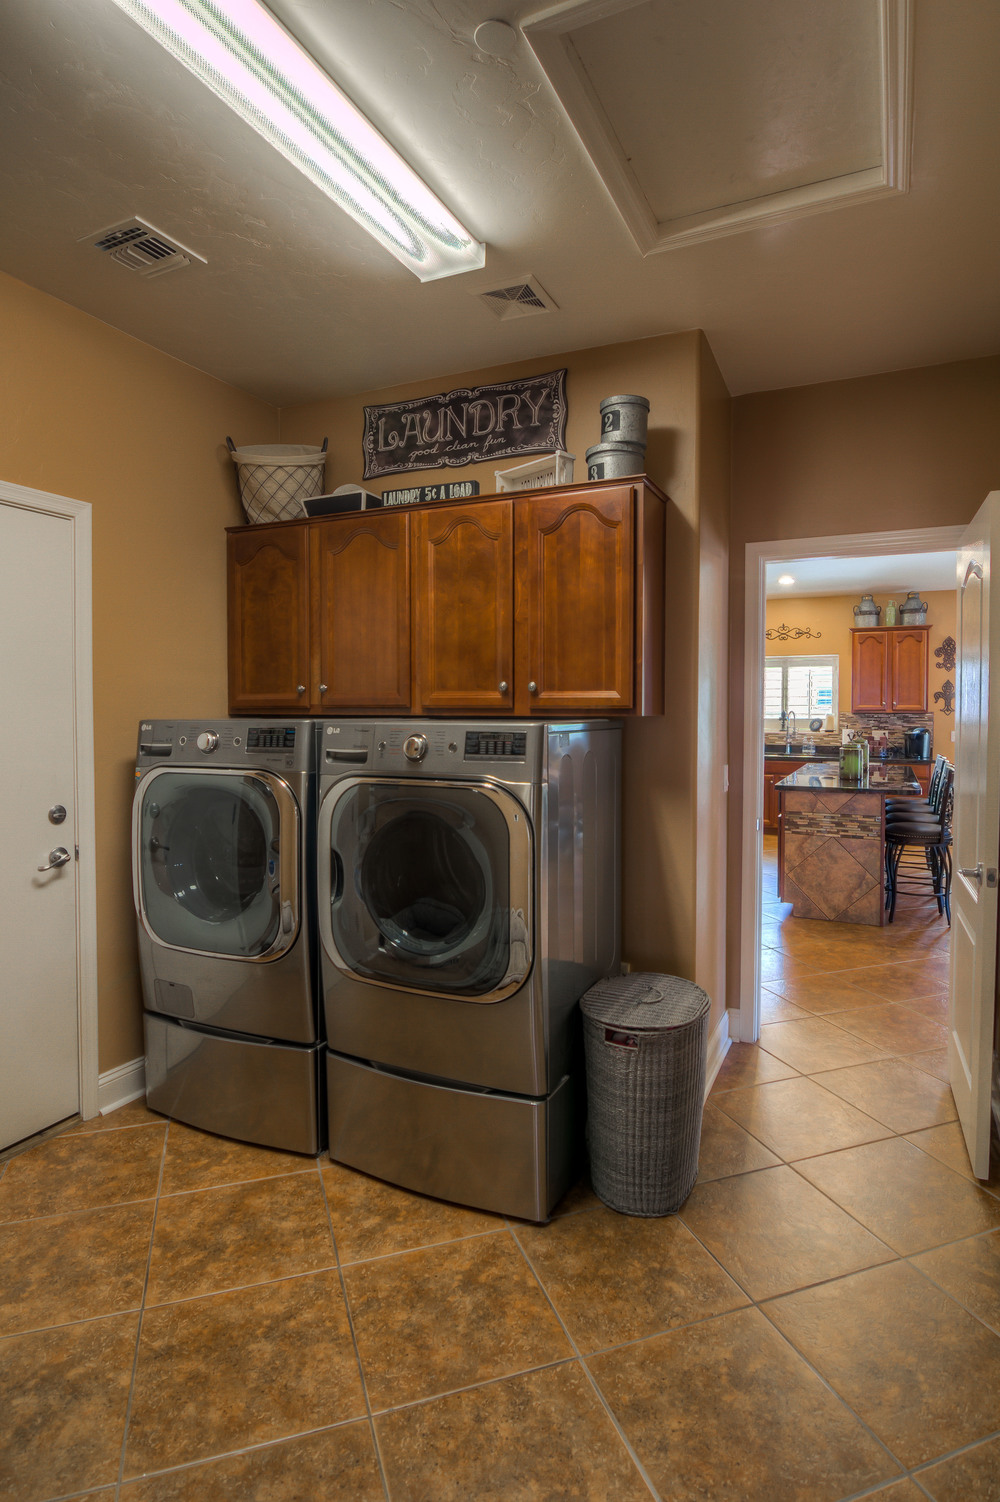 18 Laundry Room photo a.jpg